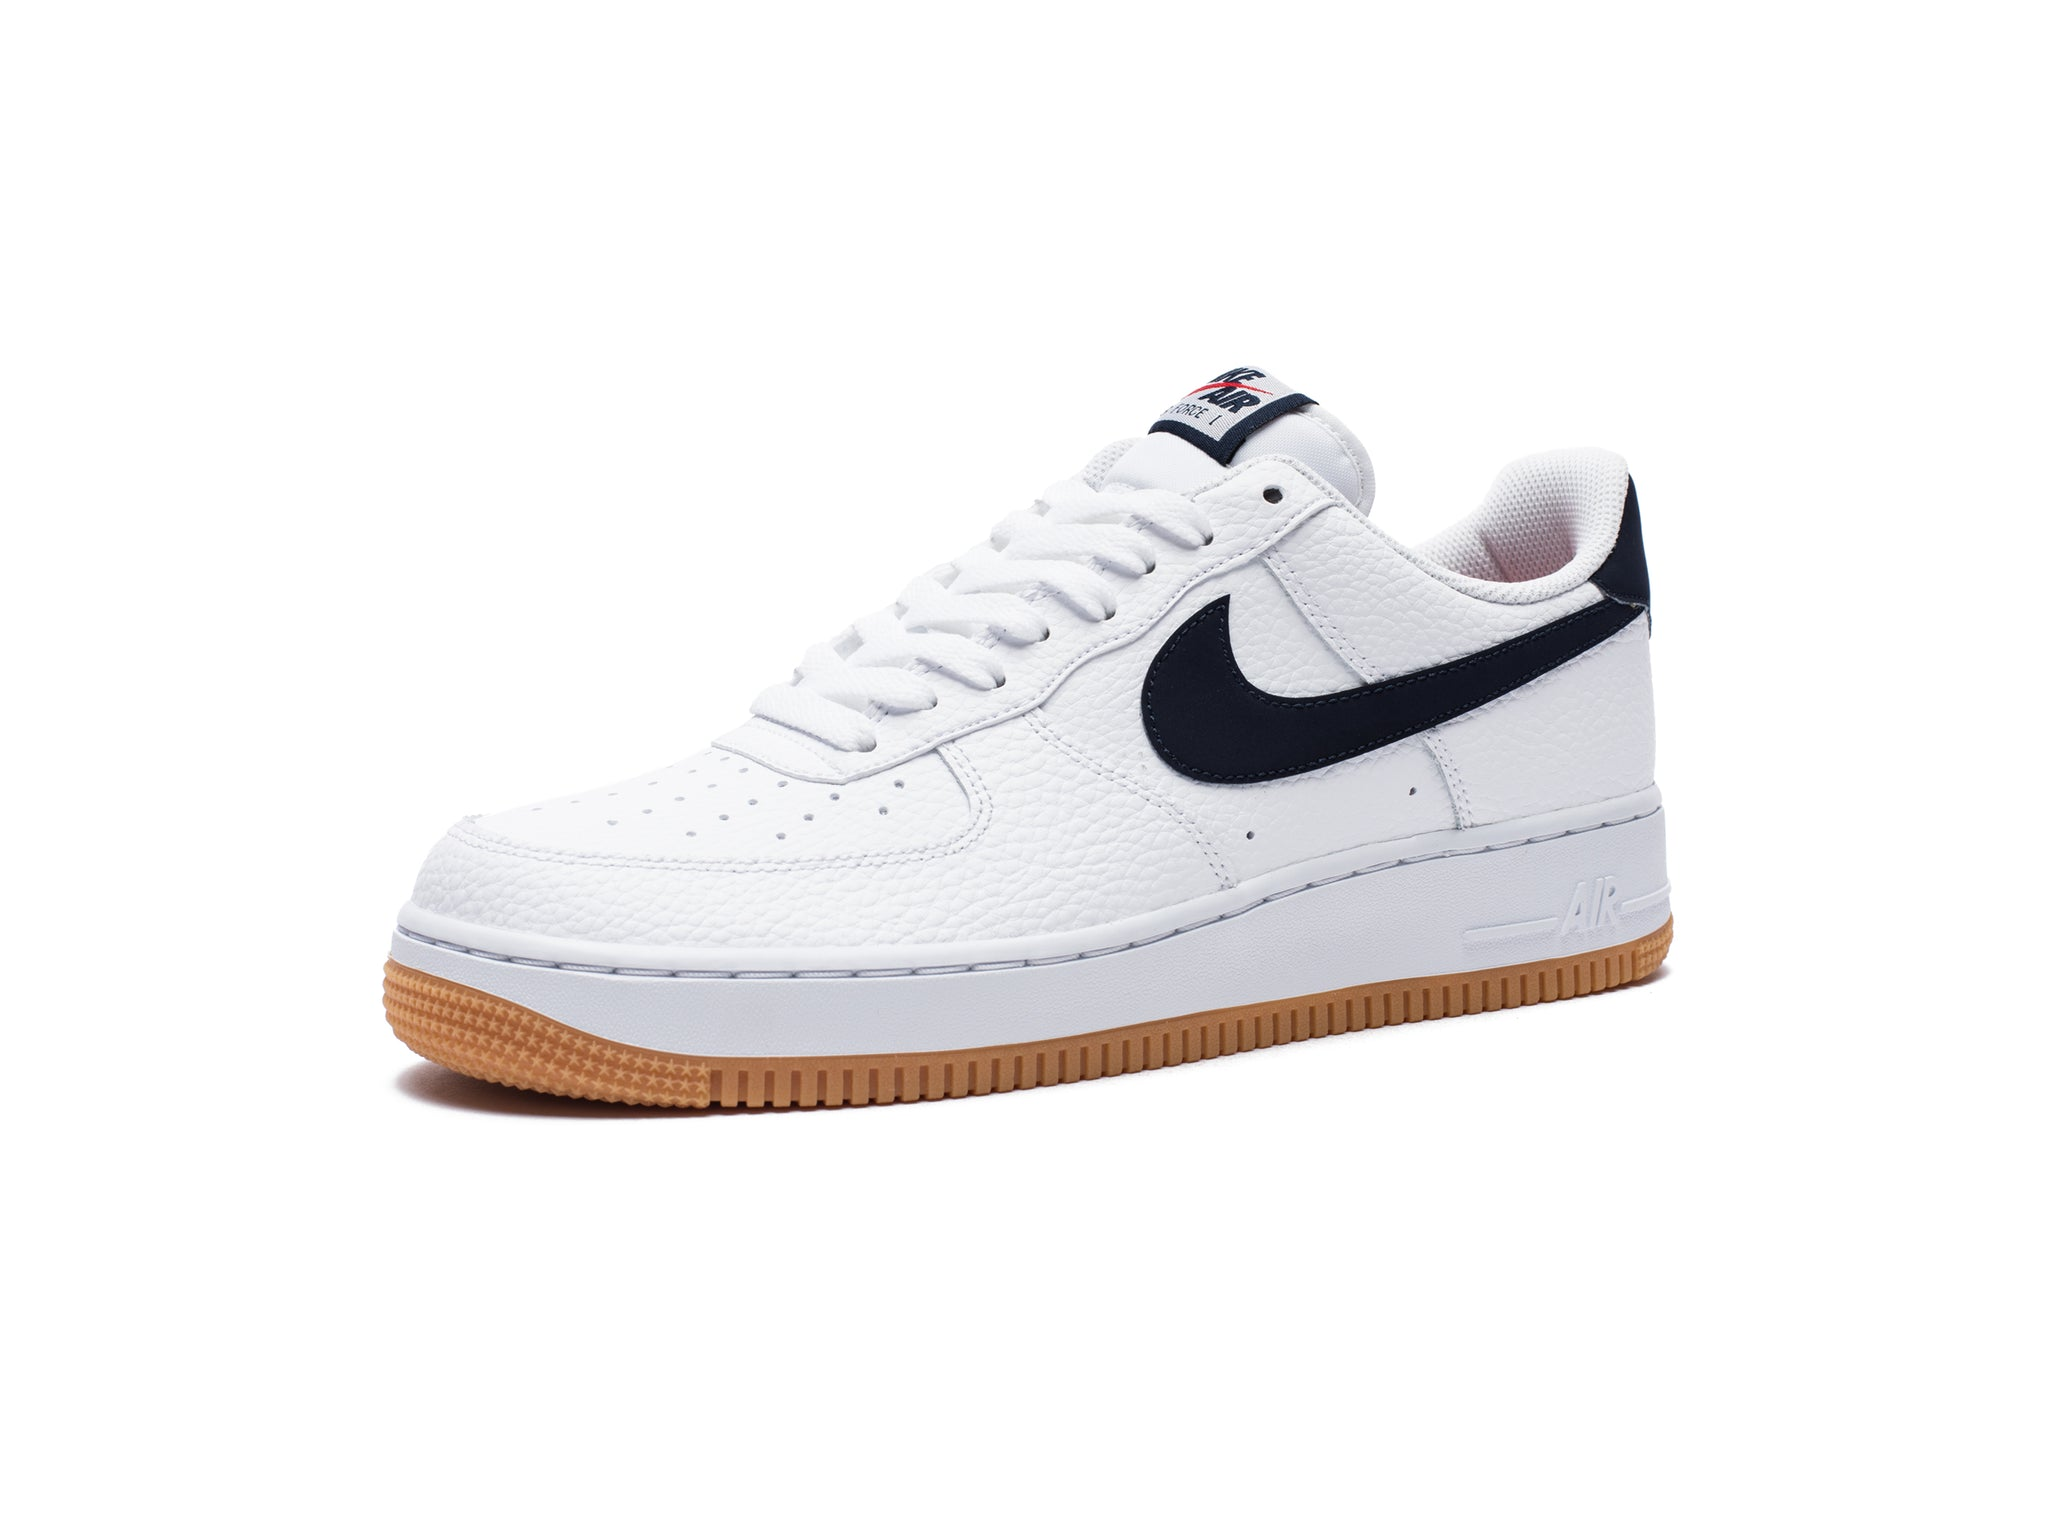 AIR FORCE 1 - WHITE/OBSIDIAN/UNIVERSITYRED